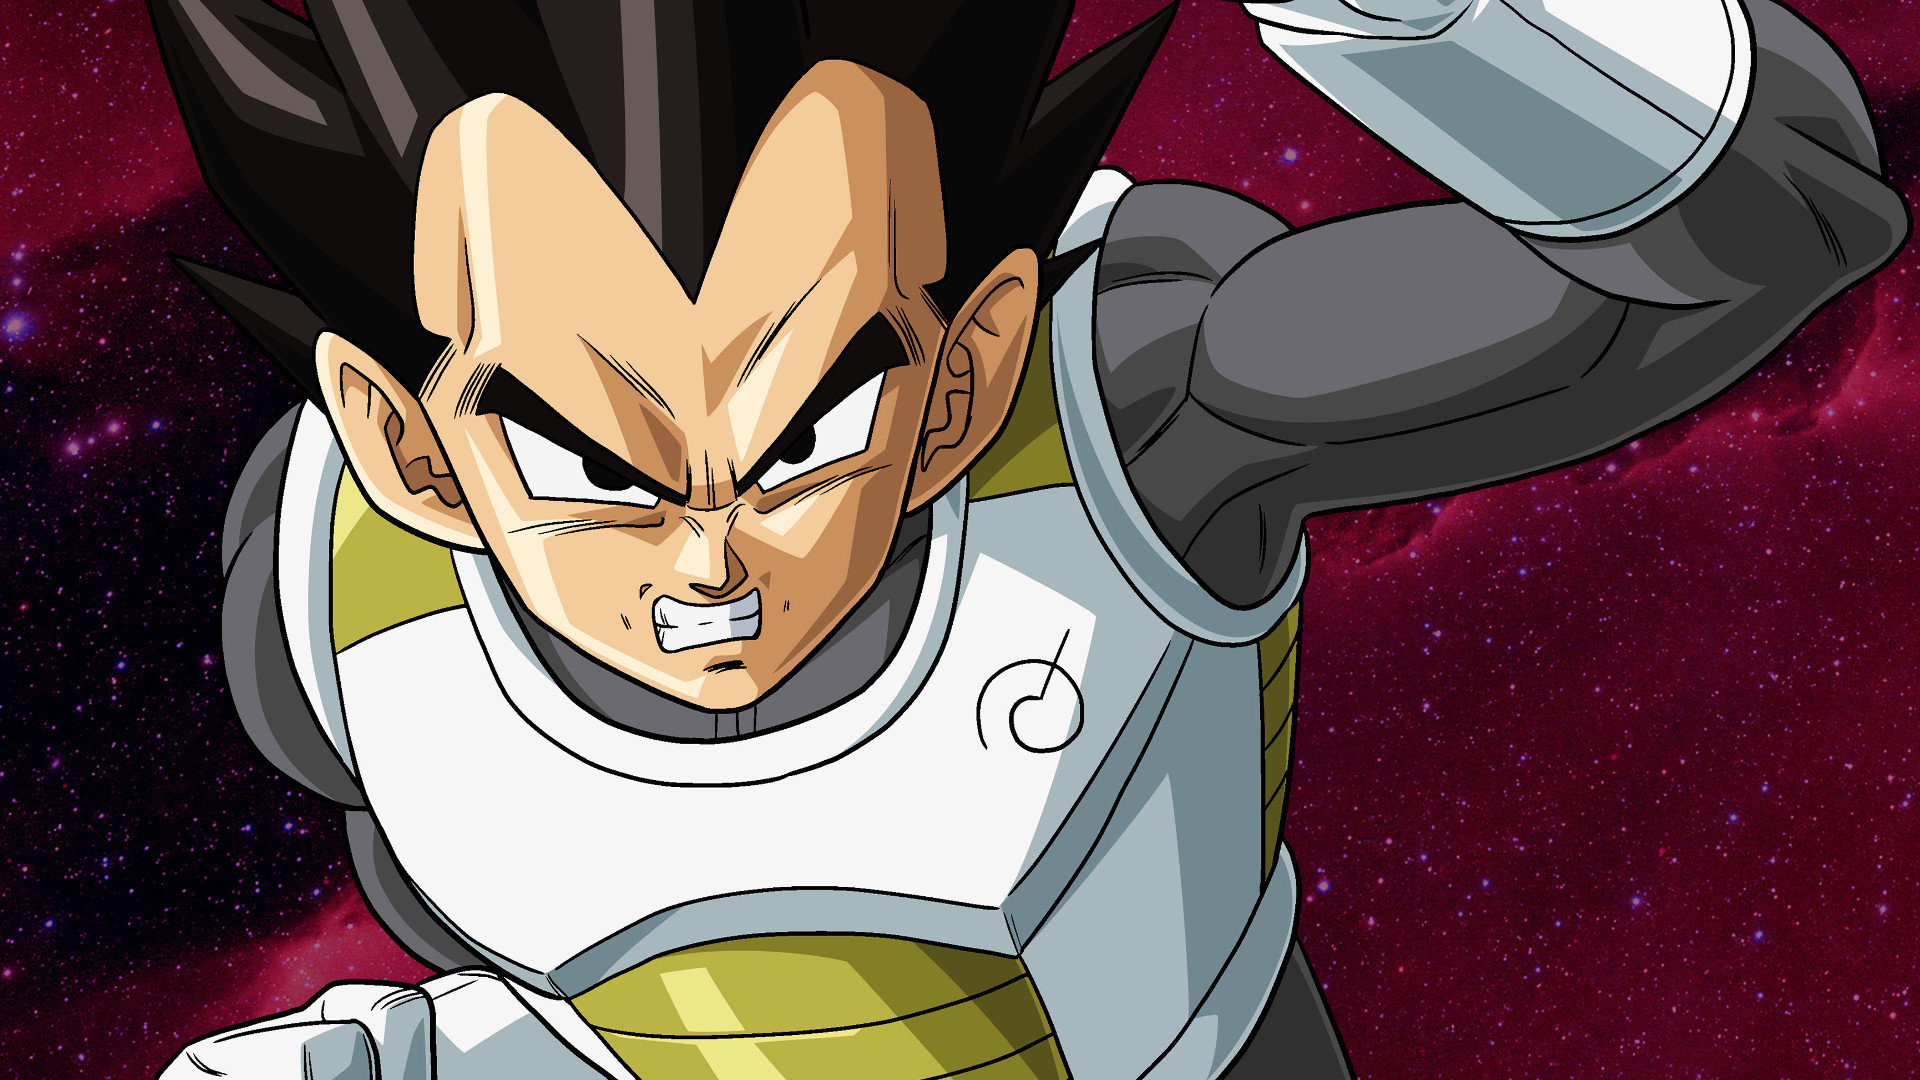 High resolution Dragon Ball Z: Resurrection Of F hd 1920x1080 background ID:391552 for desktop